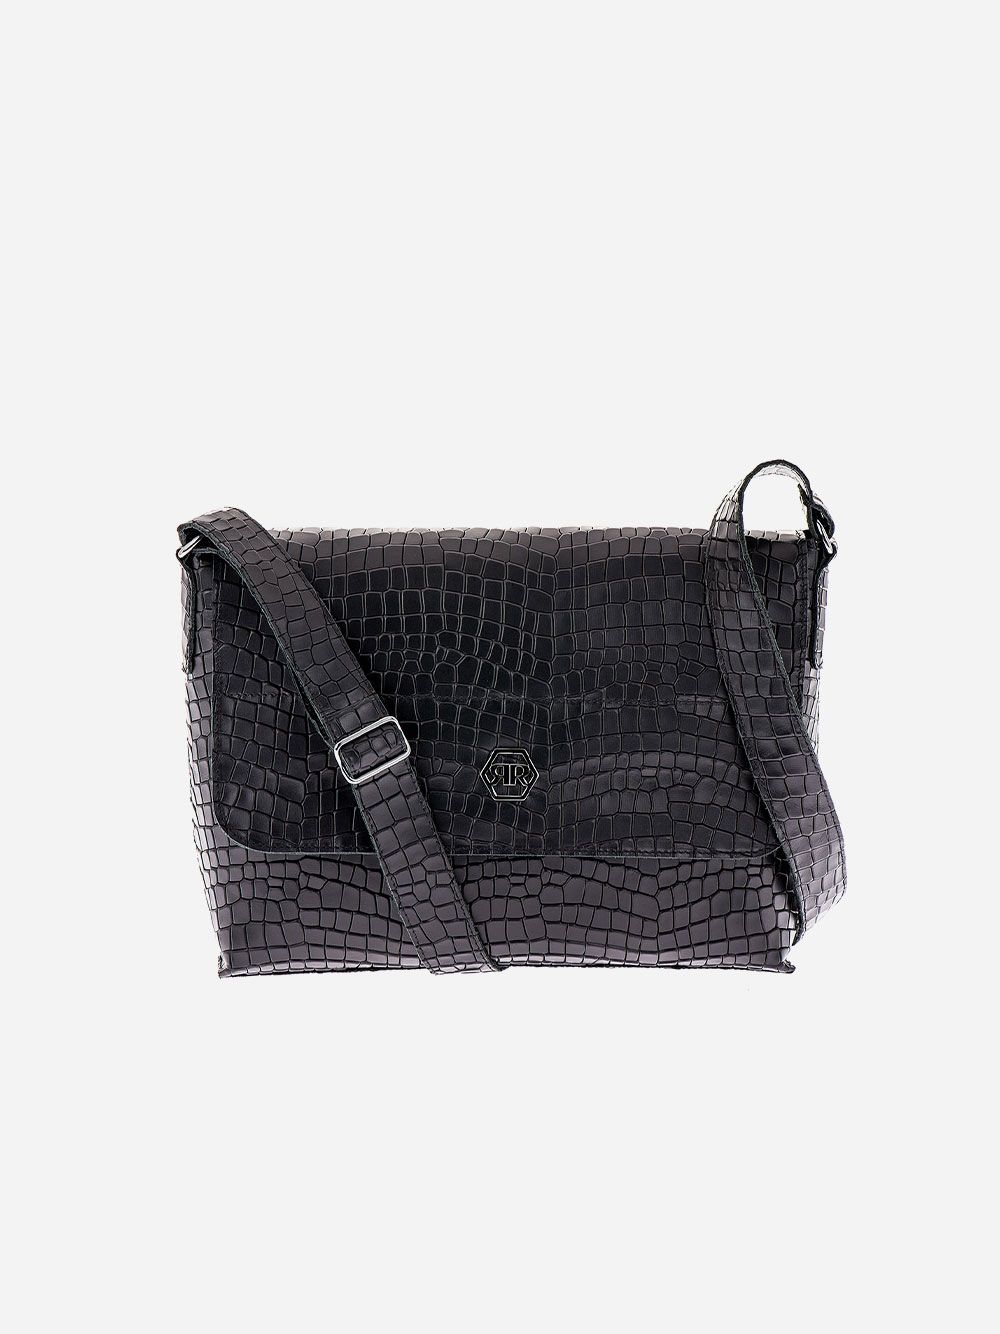 Black Croc Effect Rectangular Crossbody | Rufel